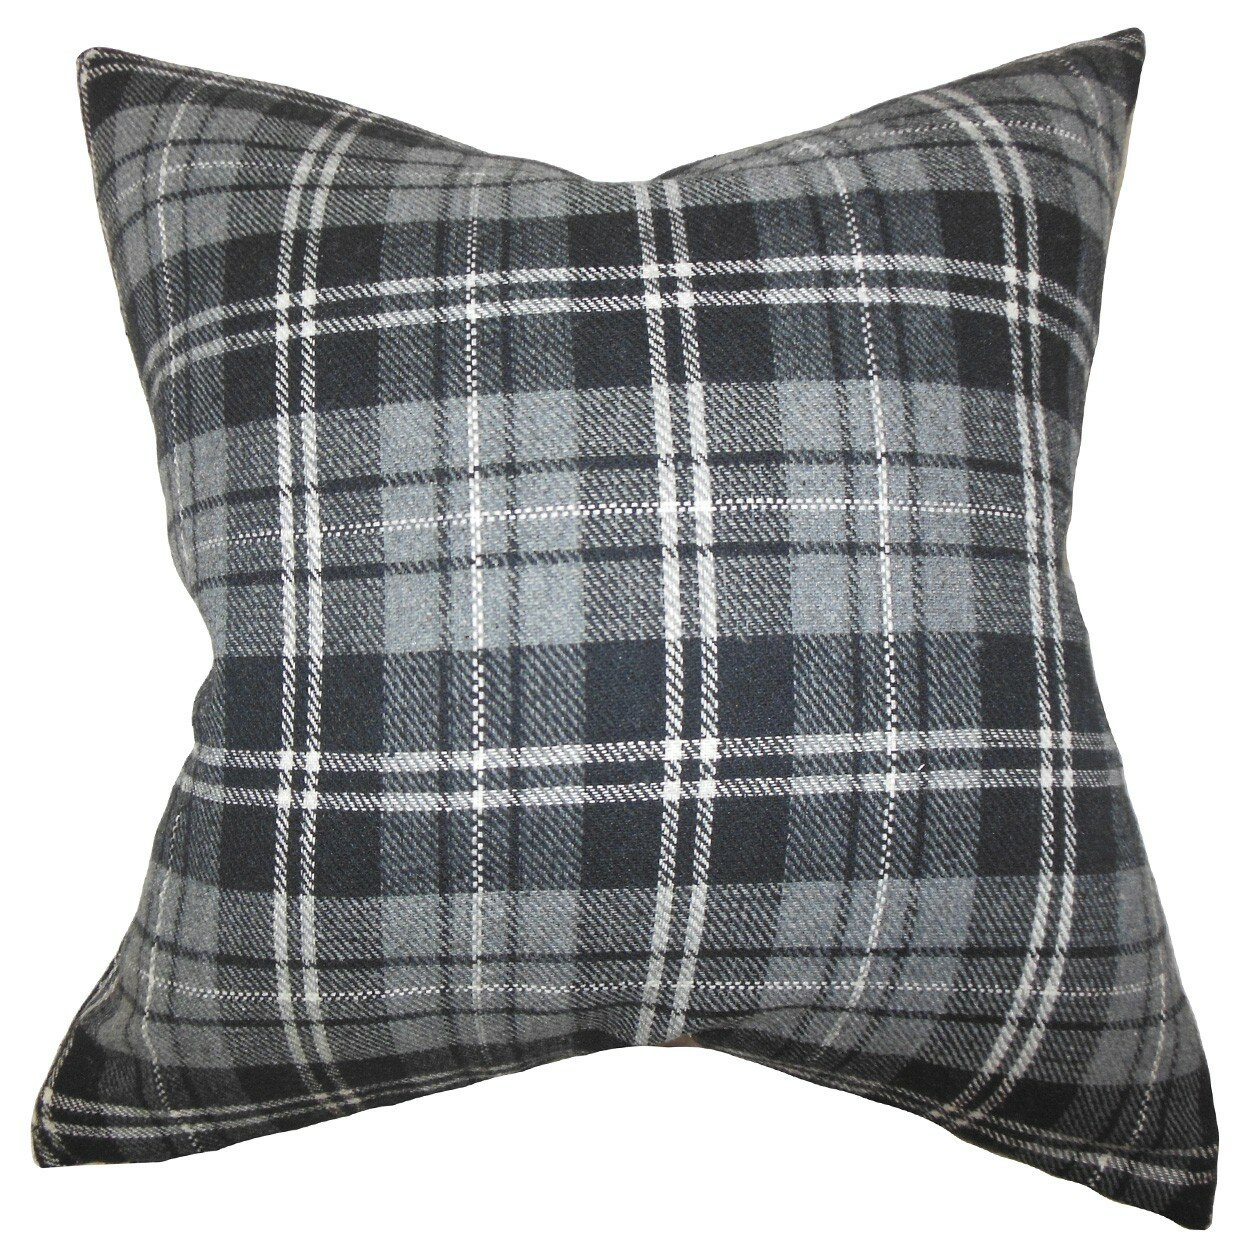 Black Plaid Throw Pillows : The Pillow Collection Baxley Plaid Wool Throw Pillow & Reviews Wayfair